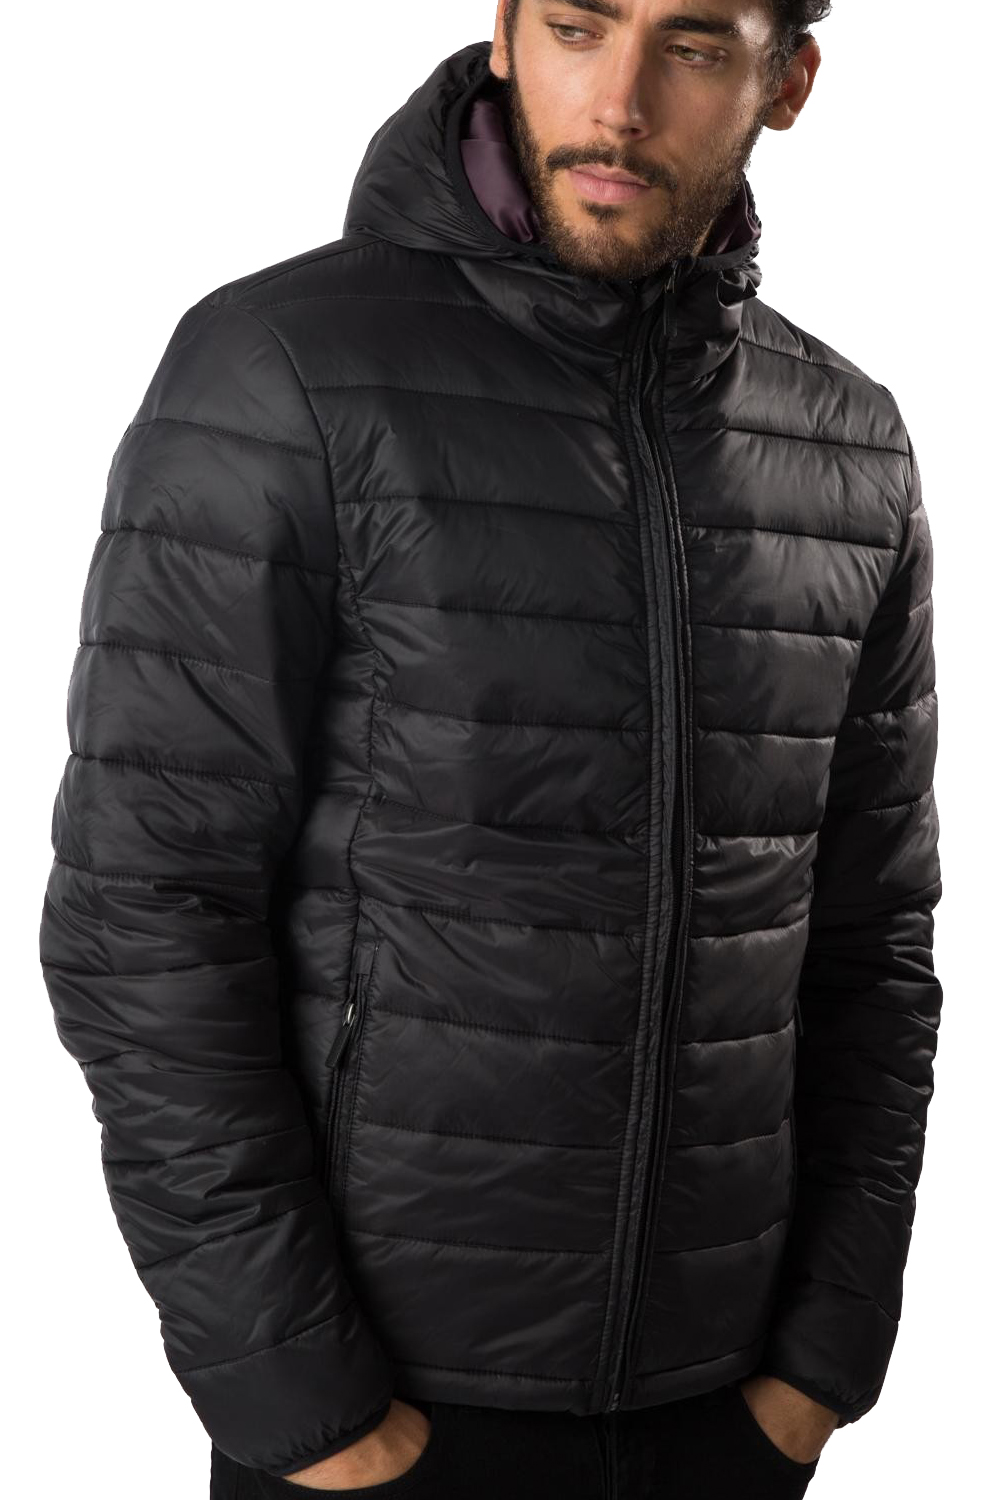 Find great deals on eBay for mens padded jacket. Shop with confidence.